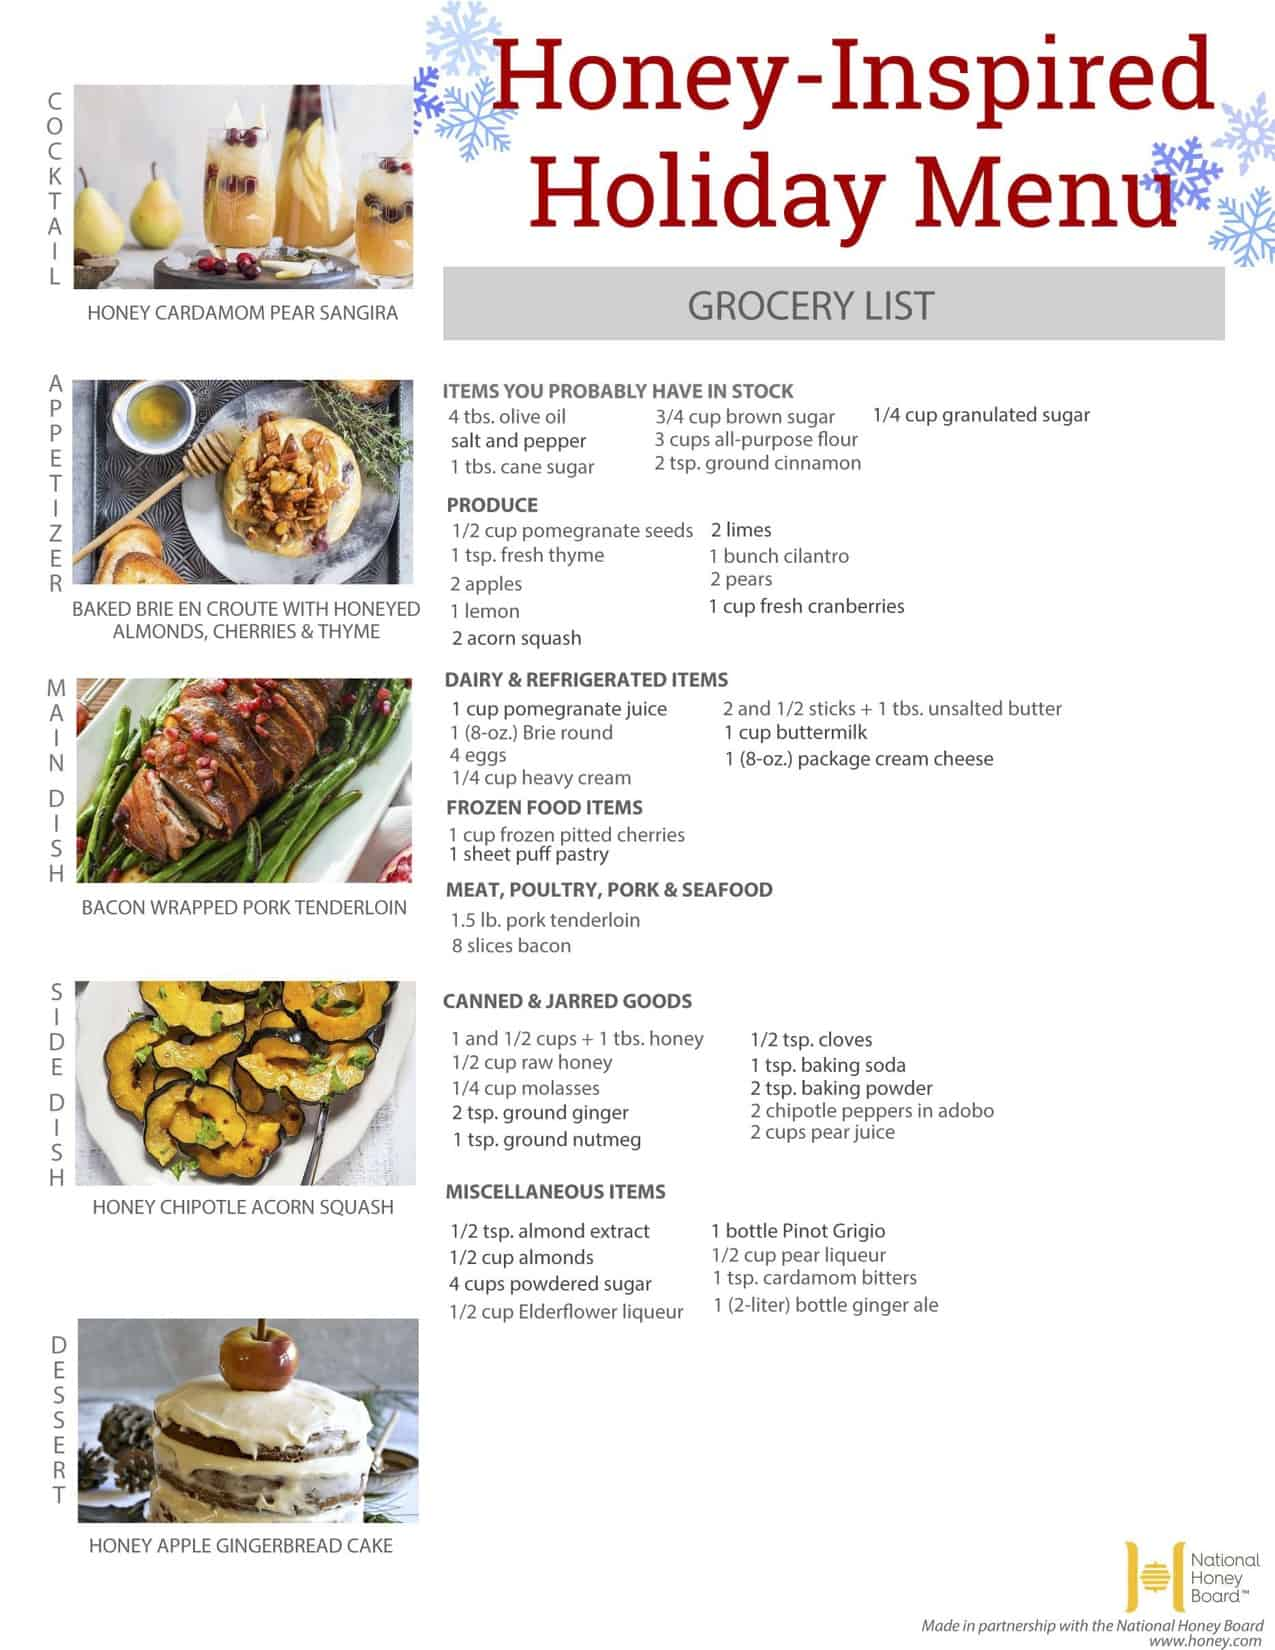 honey-inspired holiday menu